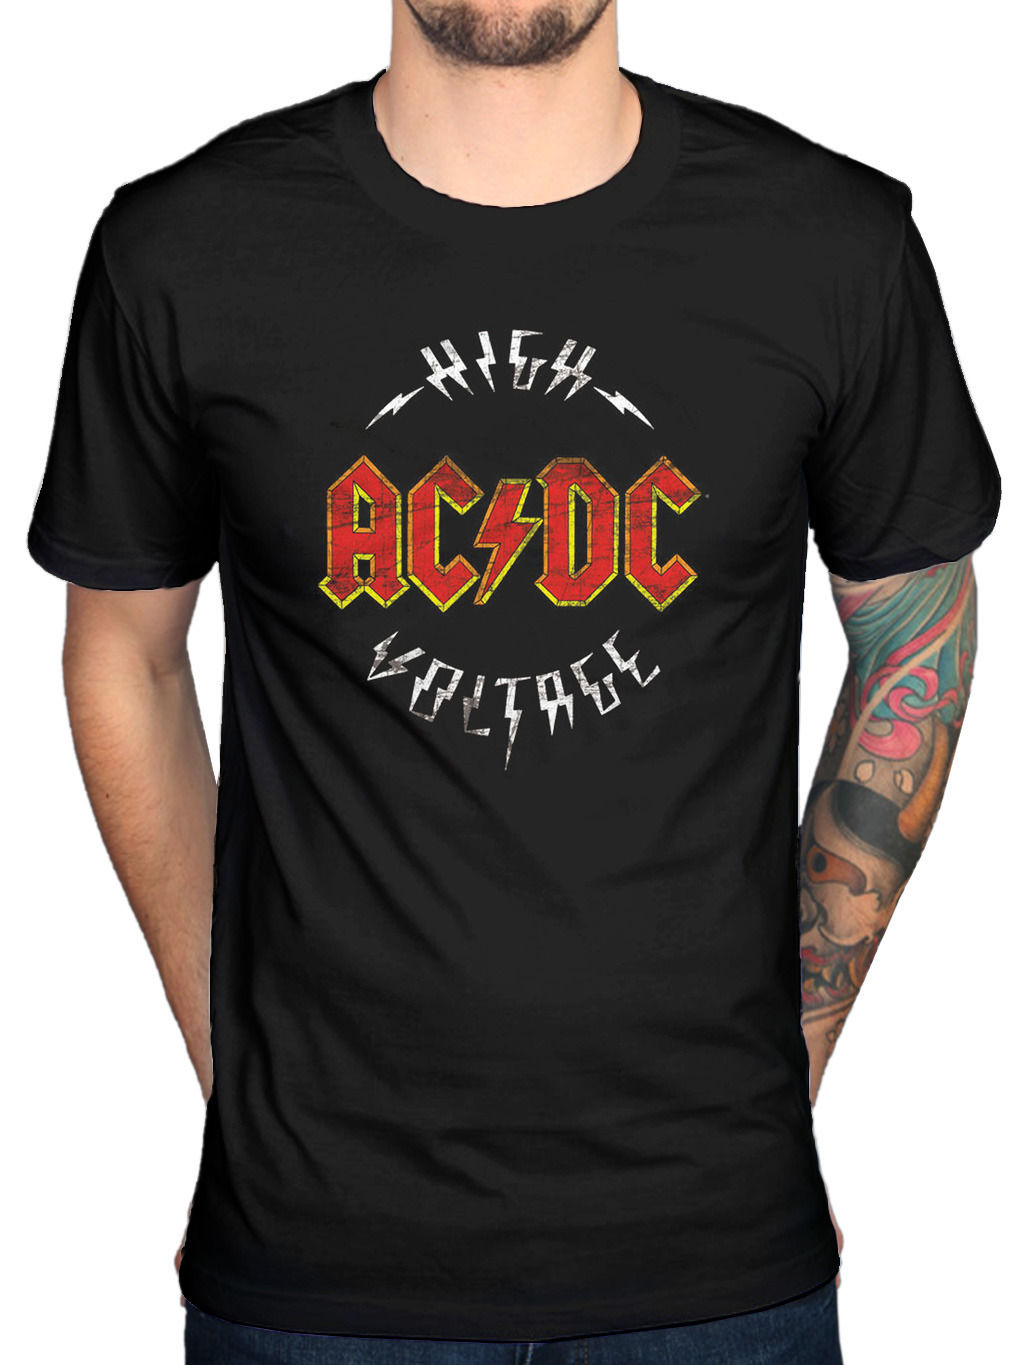 ACDC High Voltage T-Shirt Those About To Rock Back In Black Dirty Deeds